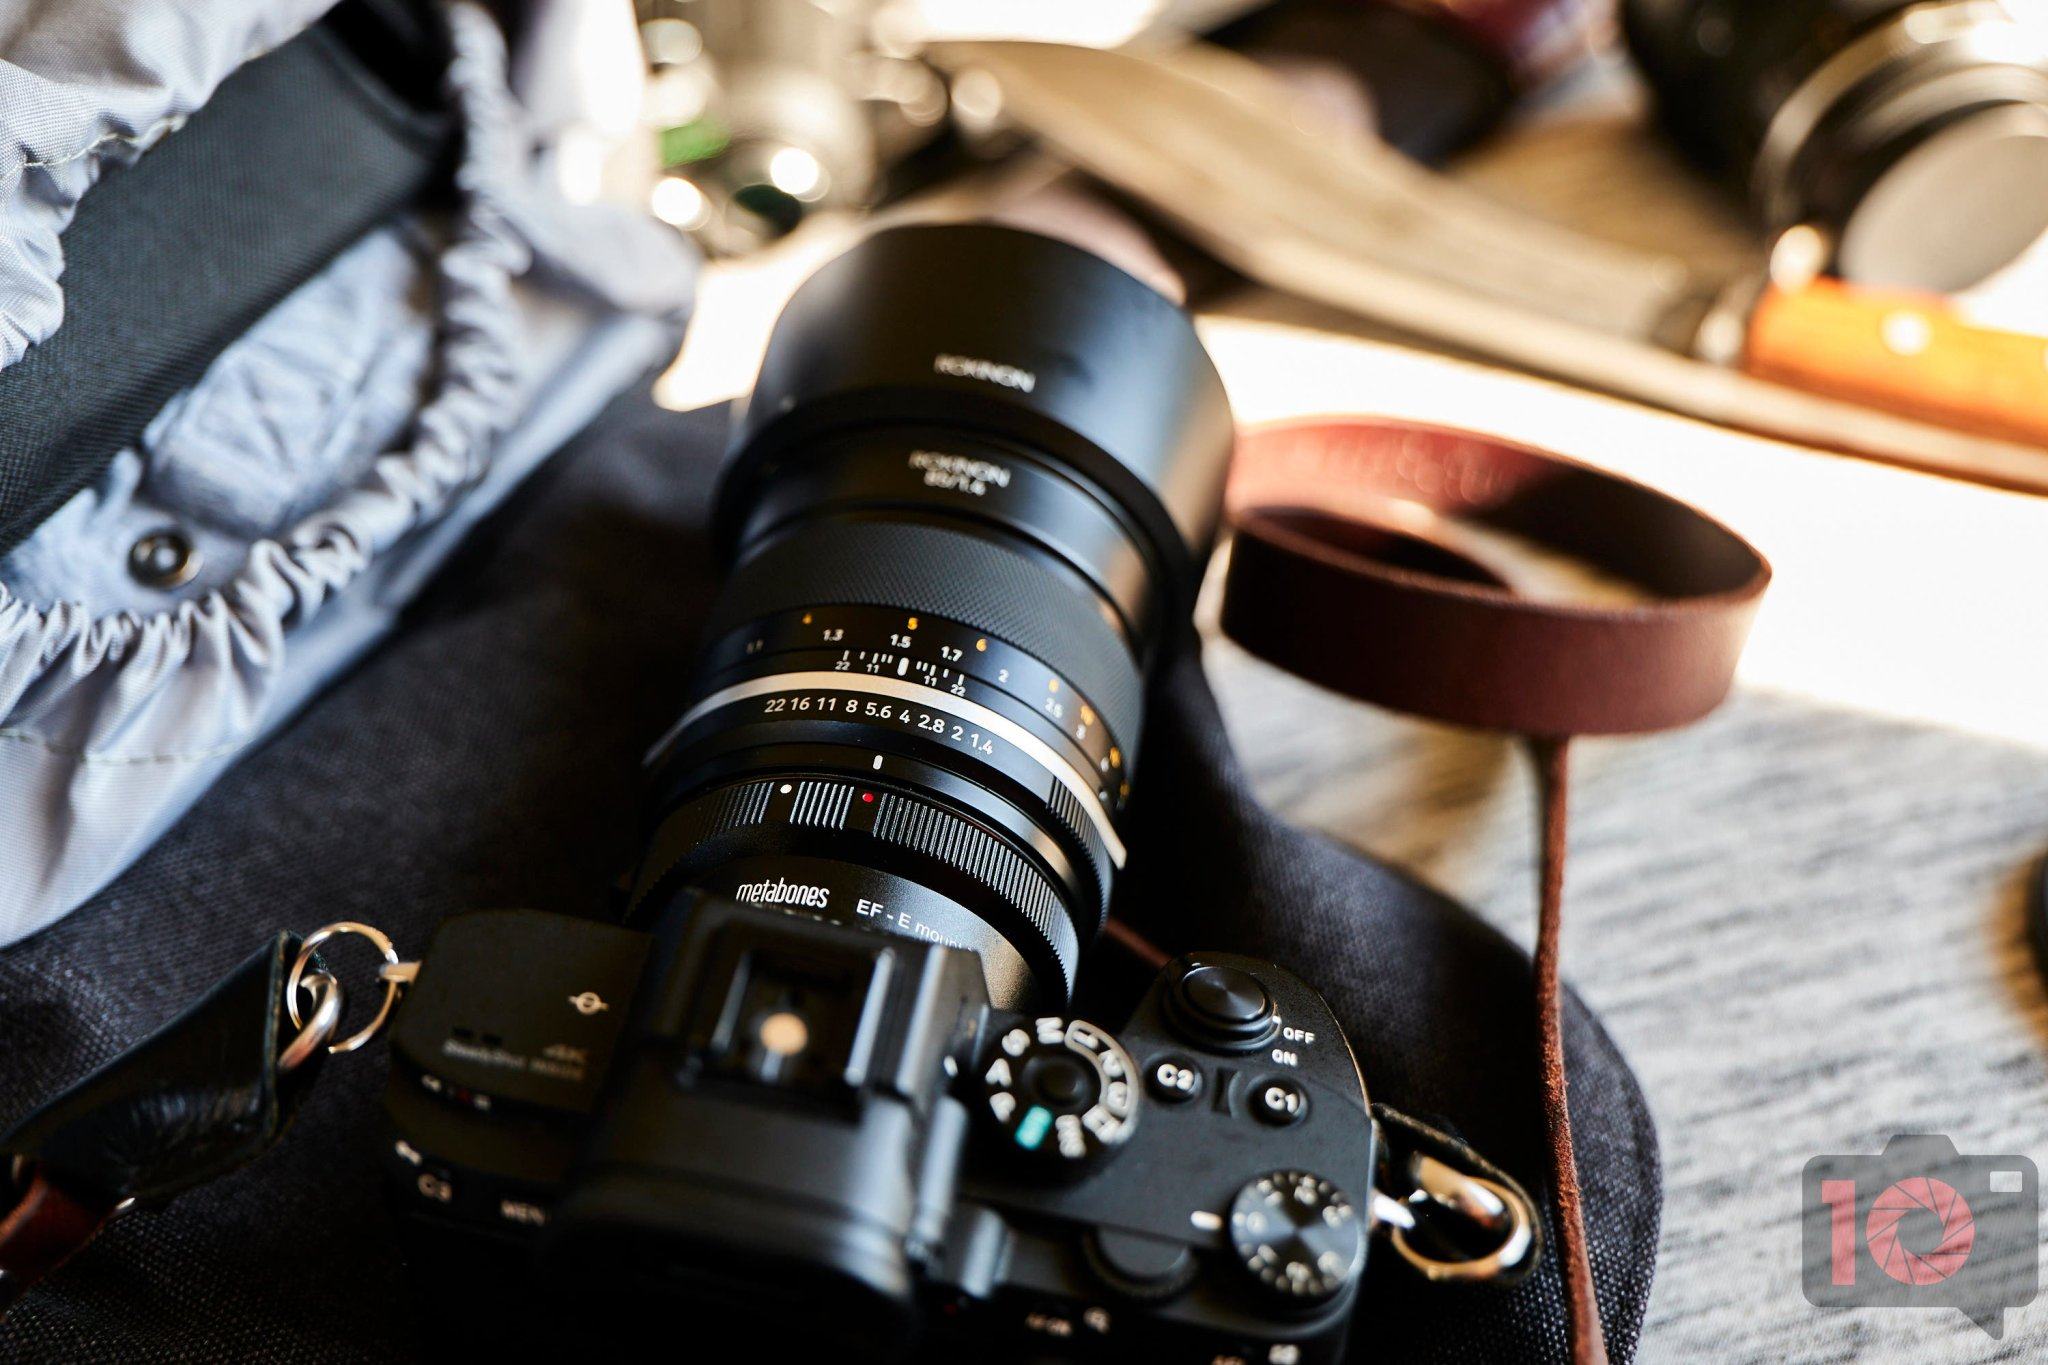 The Classic Look You'll Love. Rokinon 85mm f1.4 II MF Review